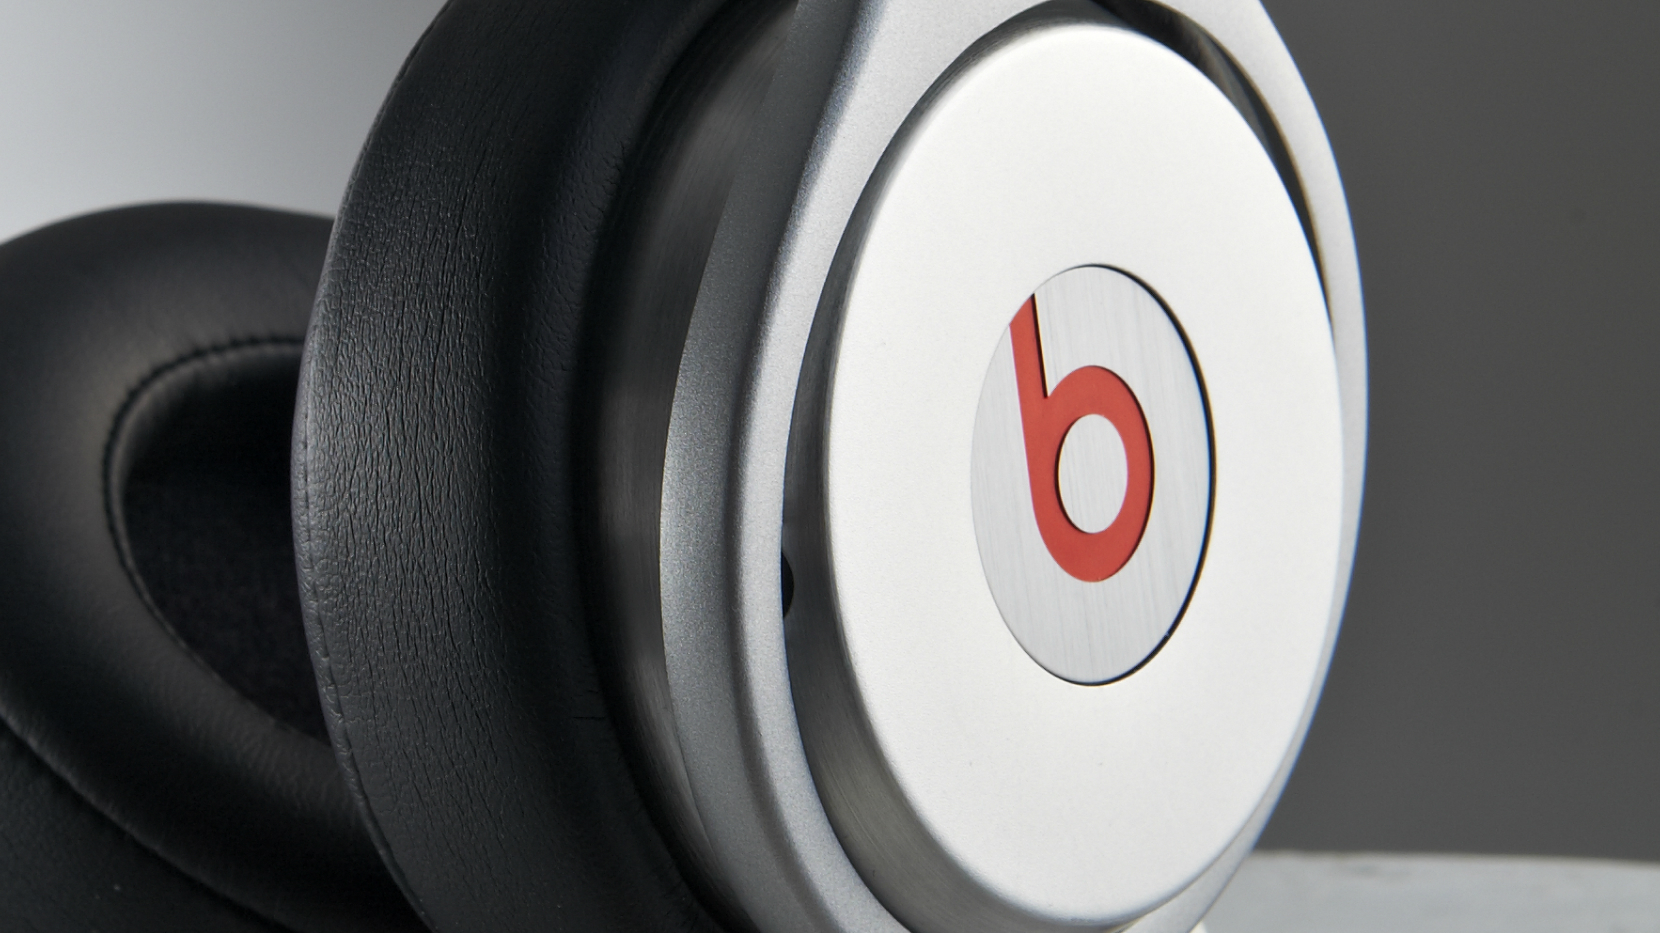 Cyber Monday: Save $100 on Beats by Dr  Dre headphones at